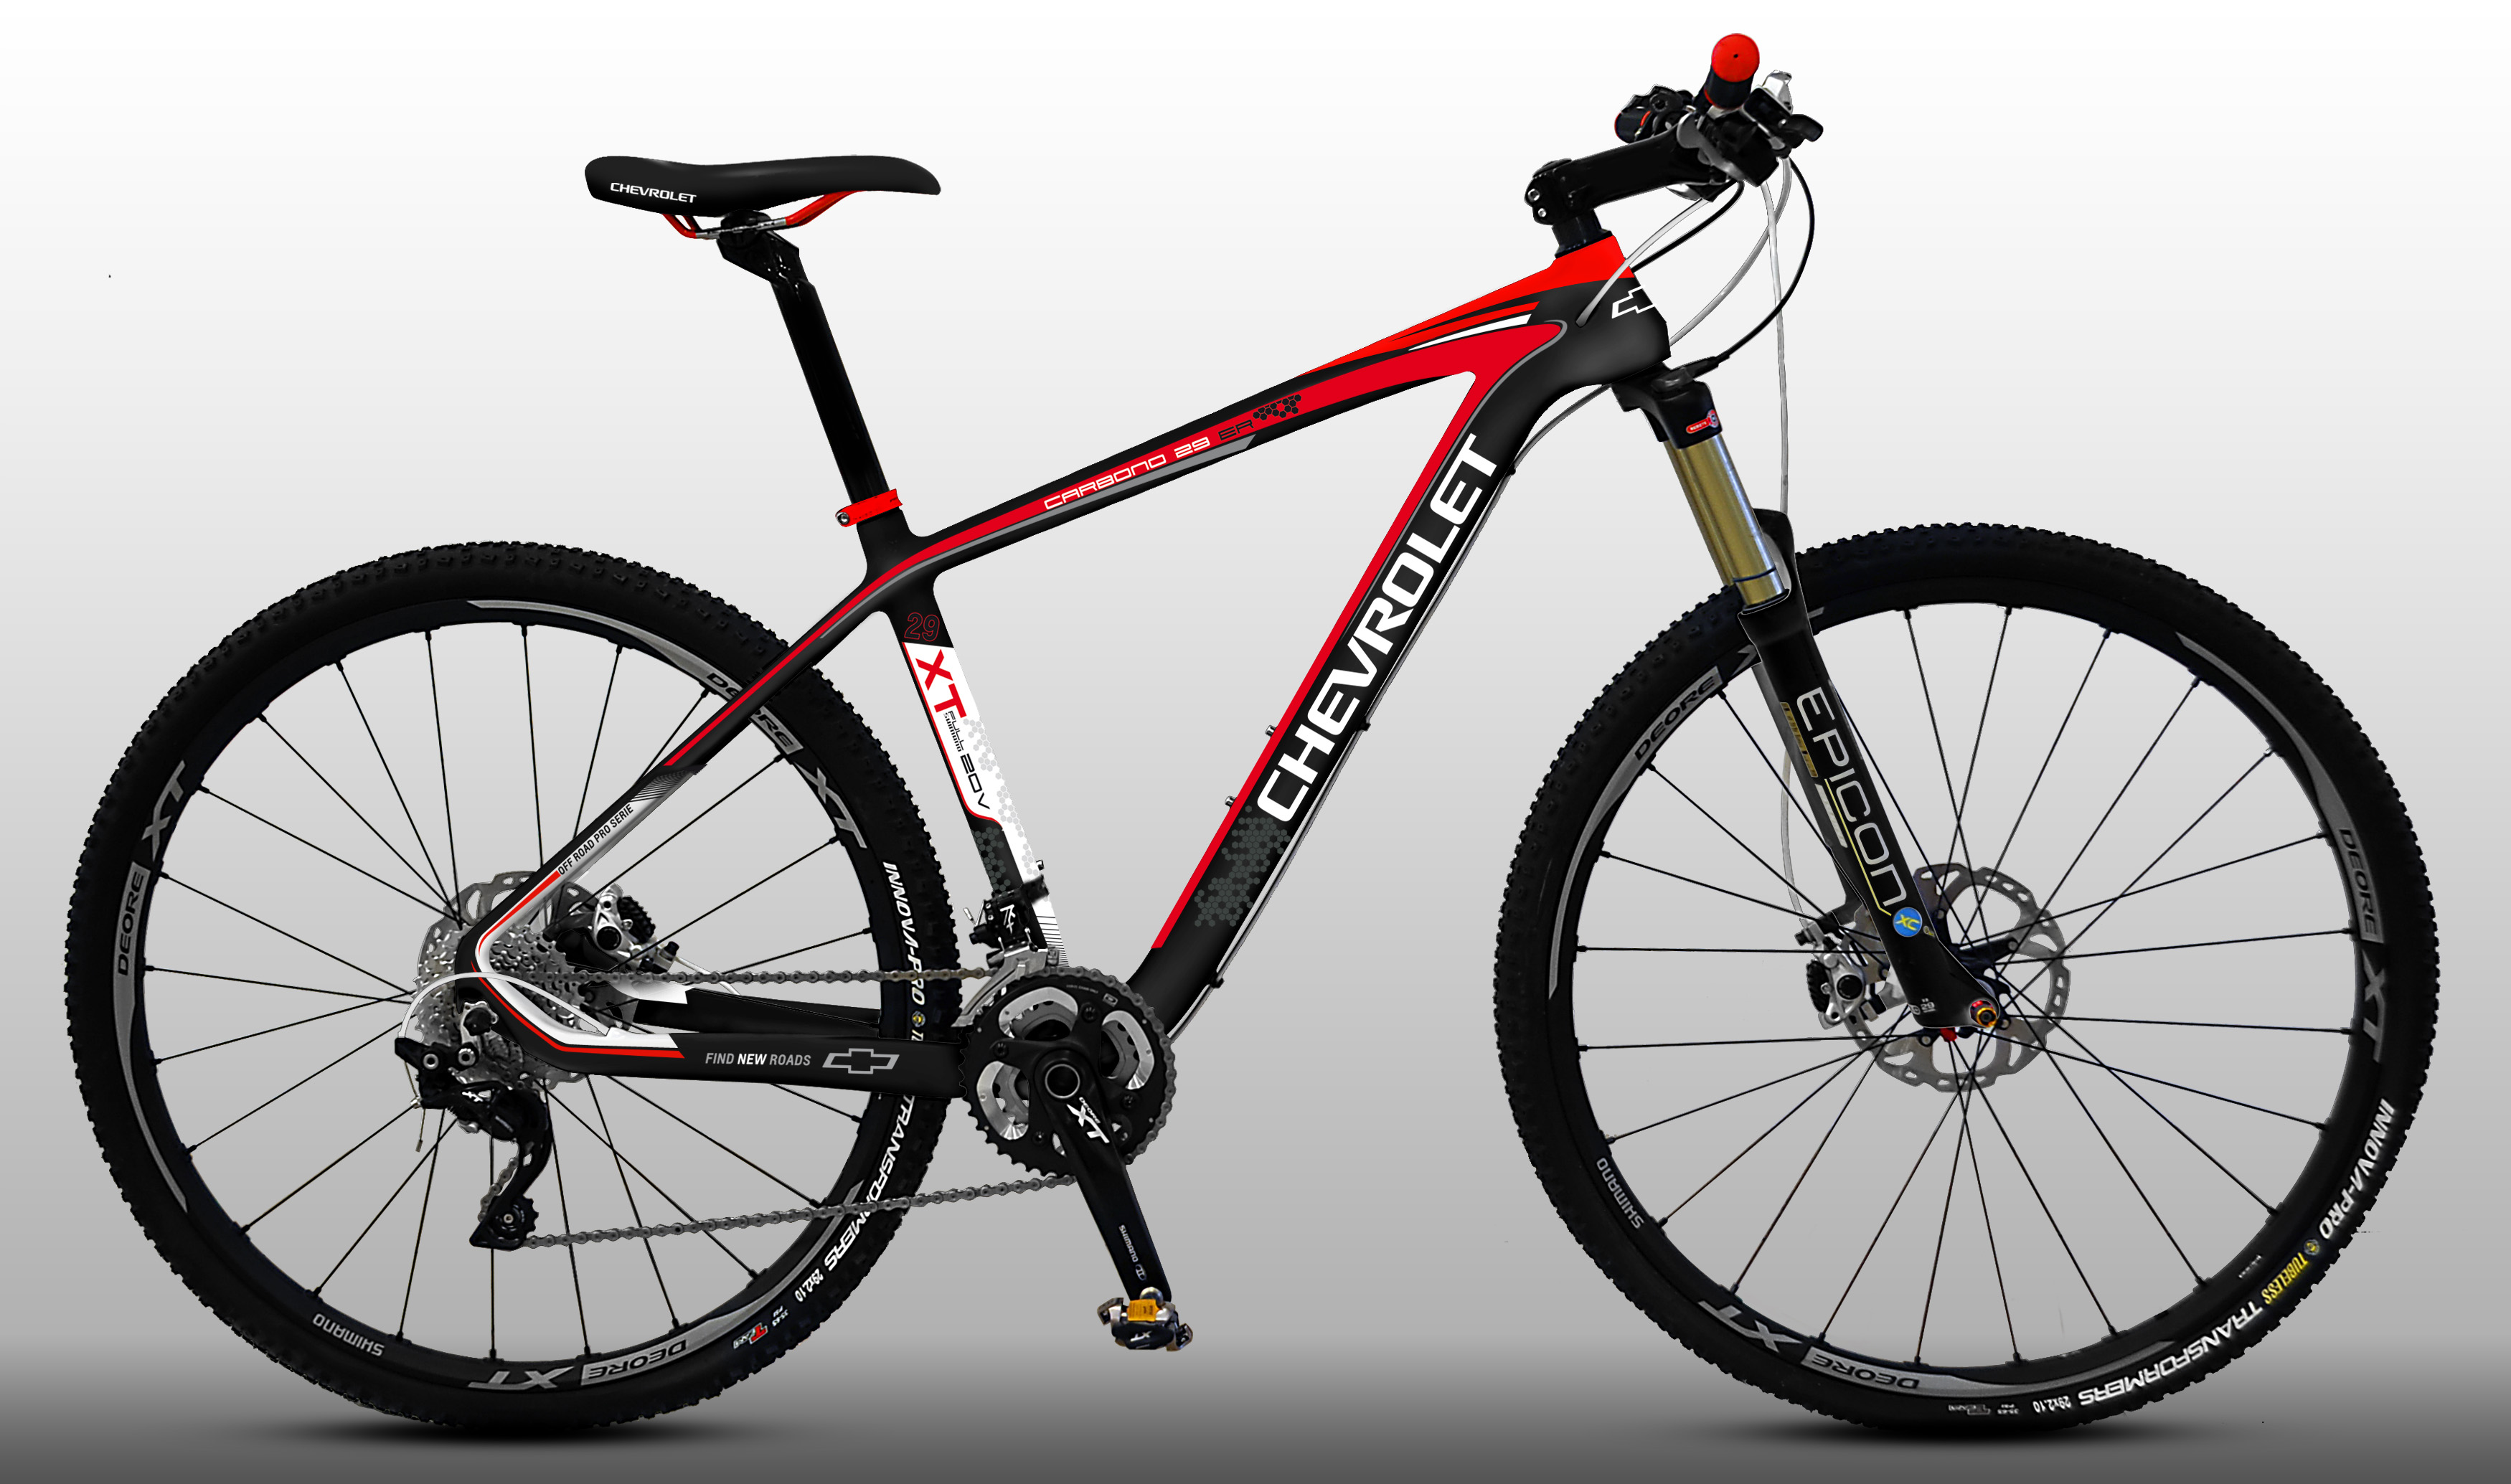 Cuadro De Carbono Mtb 29 Chevrolet Bikes Presente En Expo Bici 2015 The Post Arg